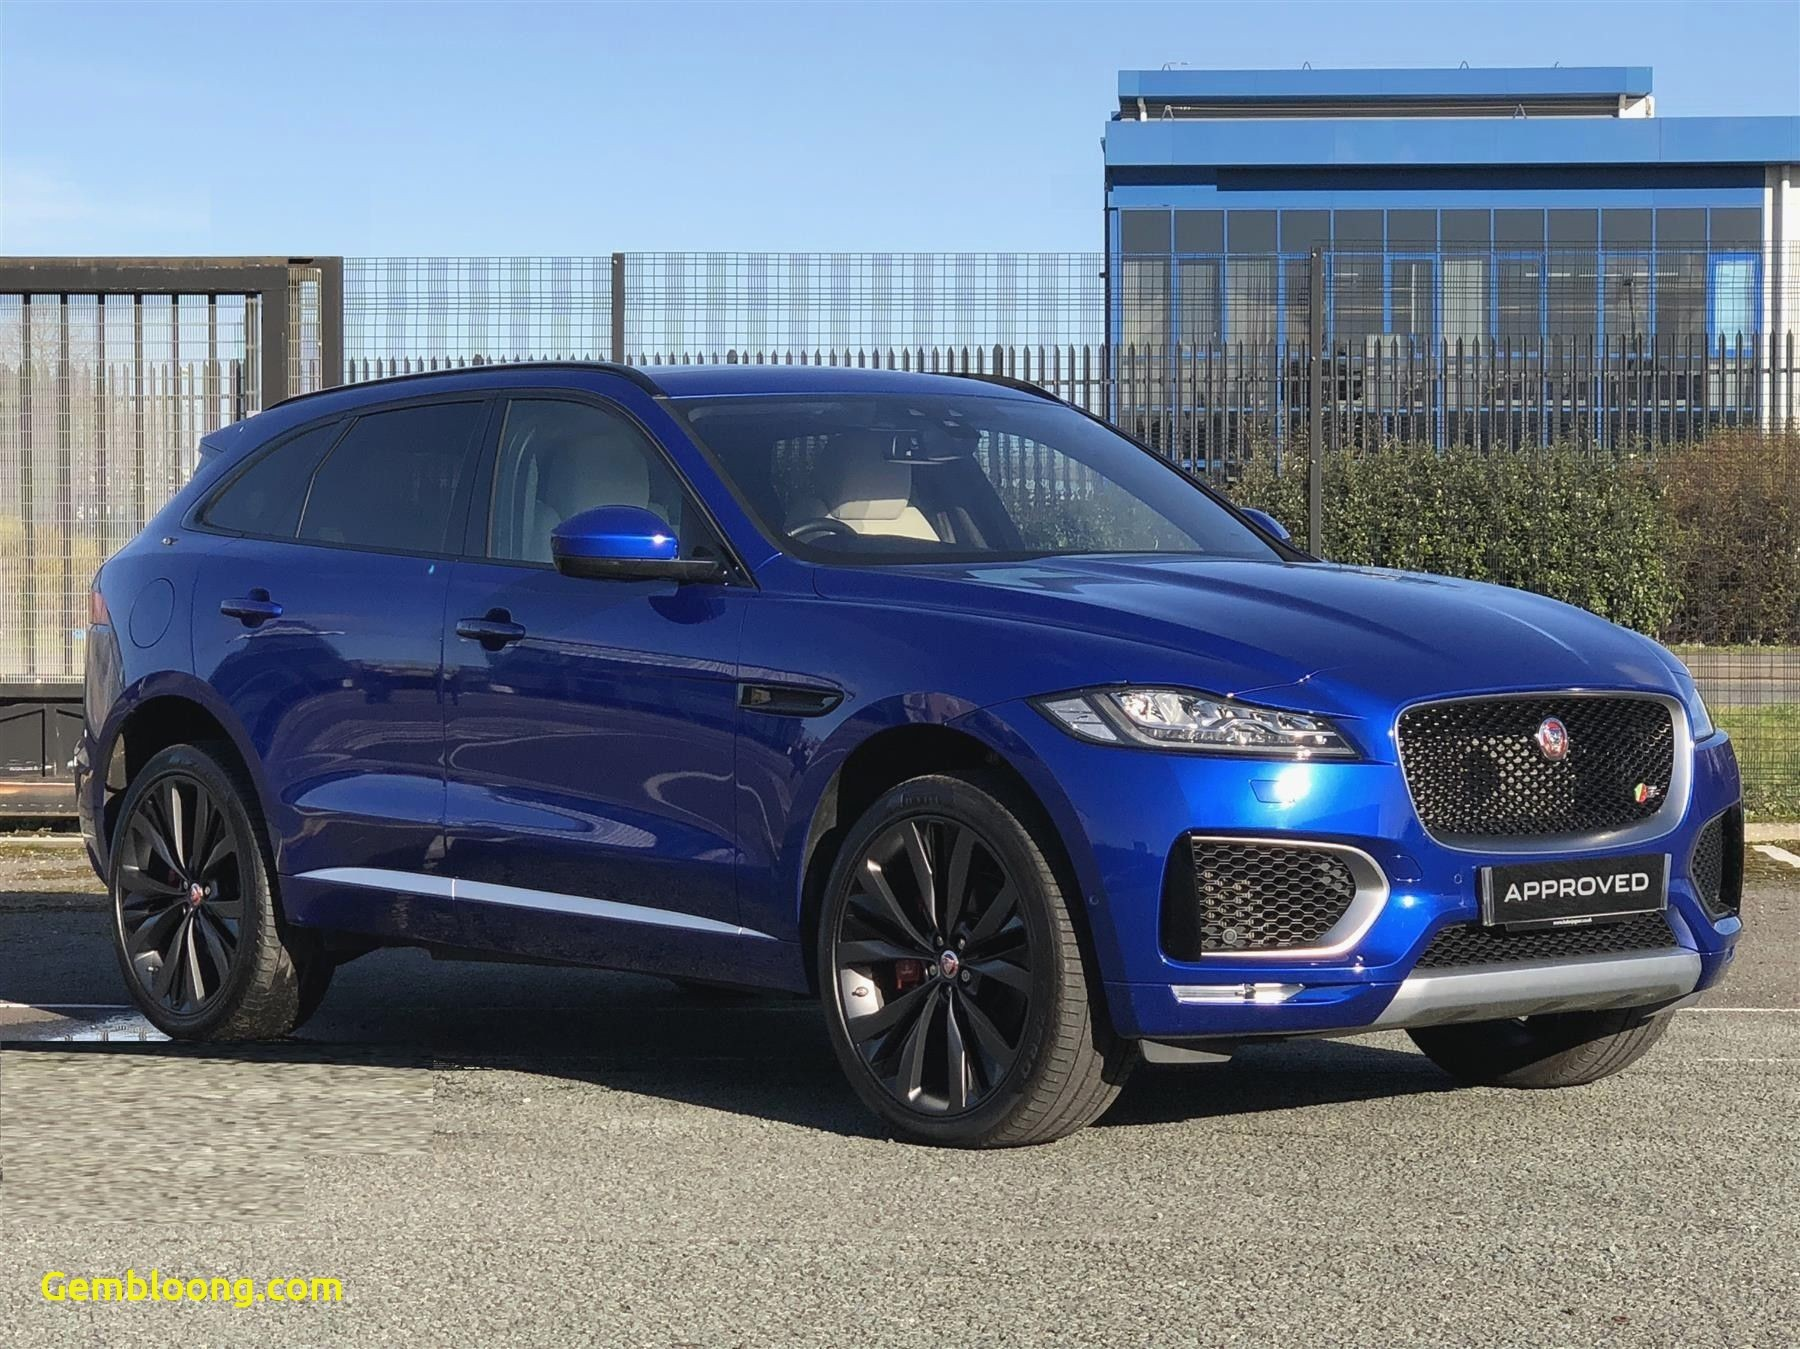 Used Luxury Cars for Sale Near Me Unique All Used Cars for Sale Awesome Best Used 2016 Jaguar F Pace